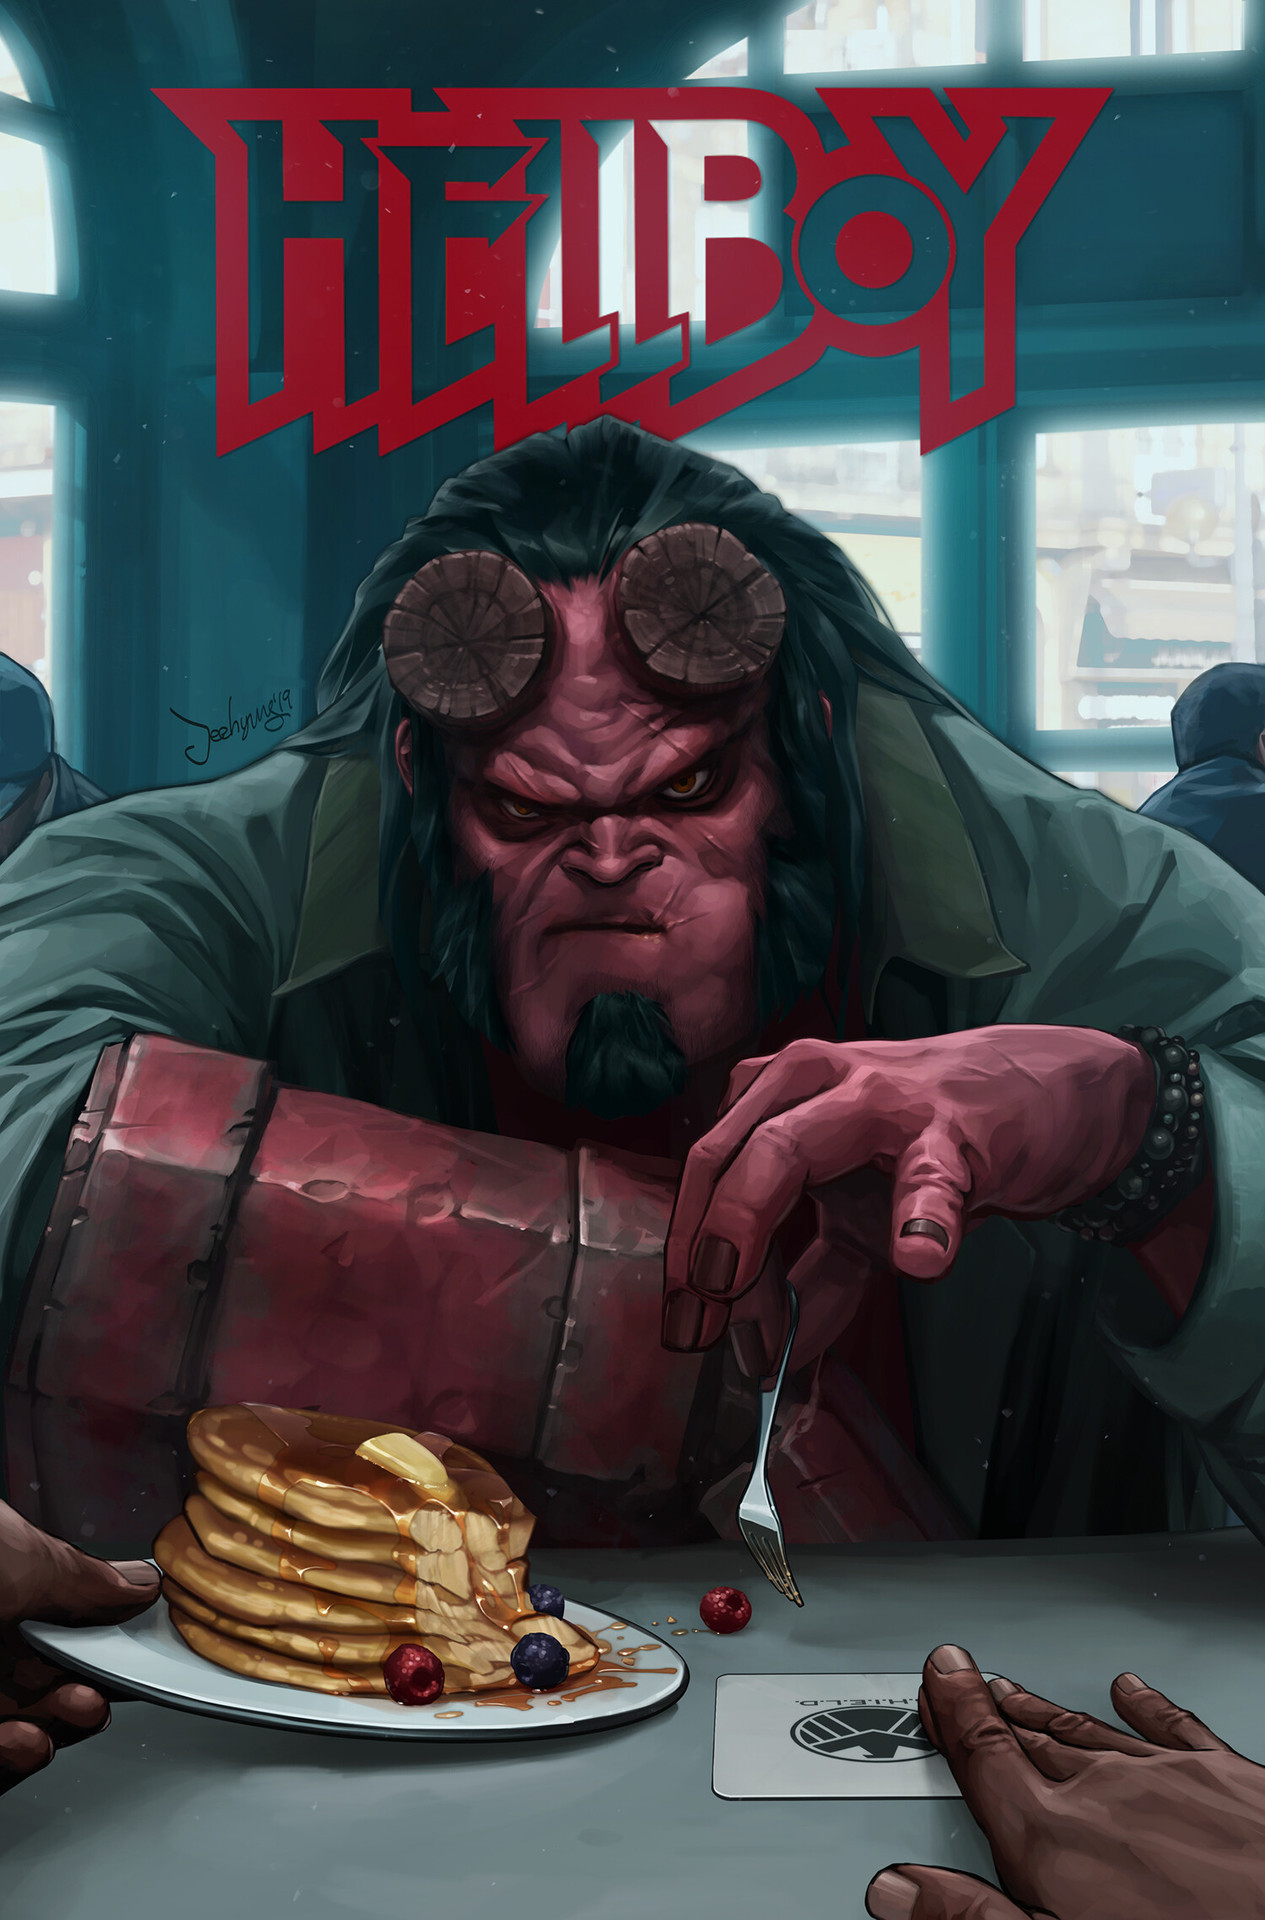 Hellboy by JeeHyung lee